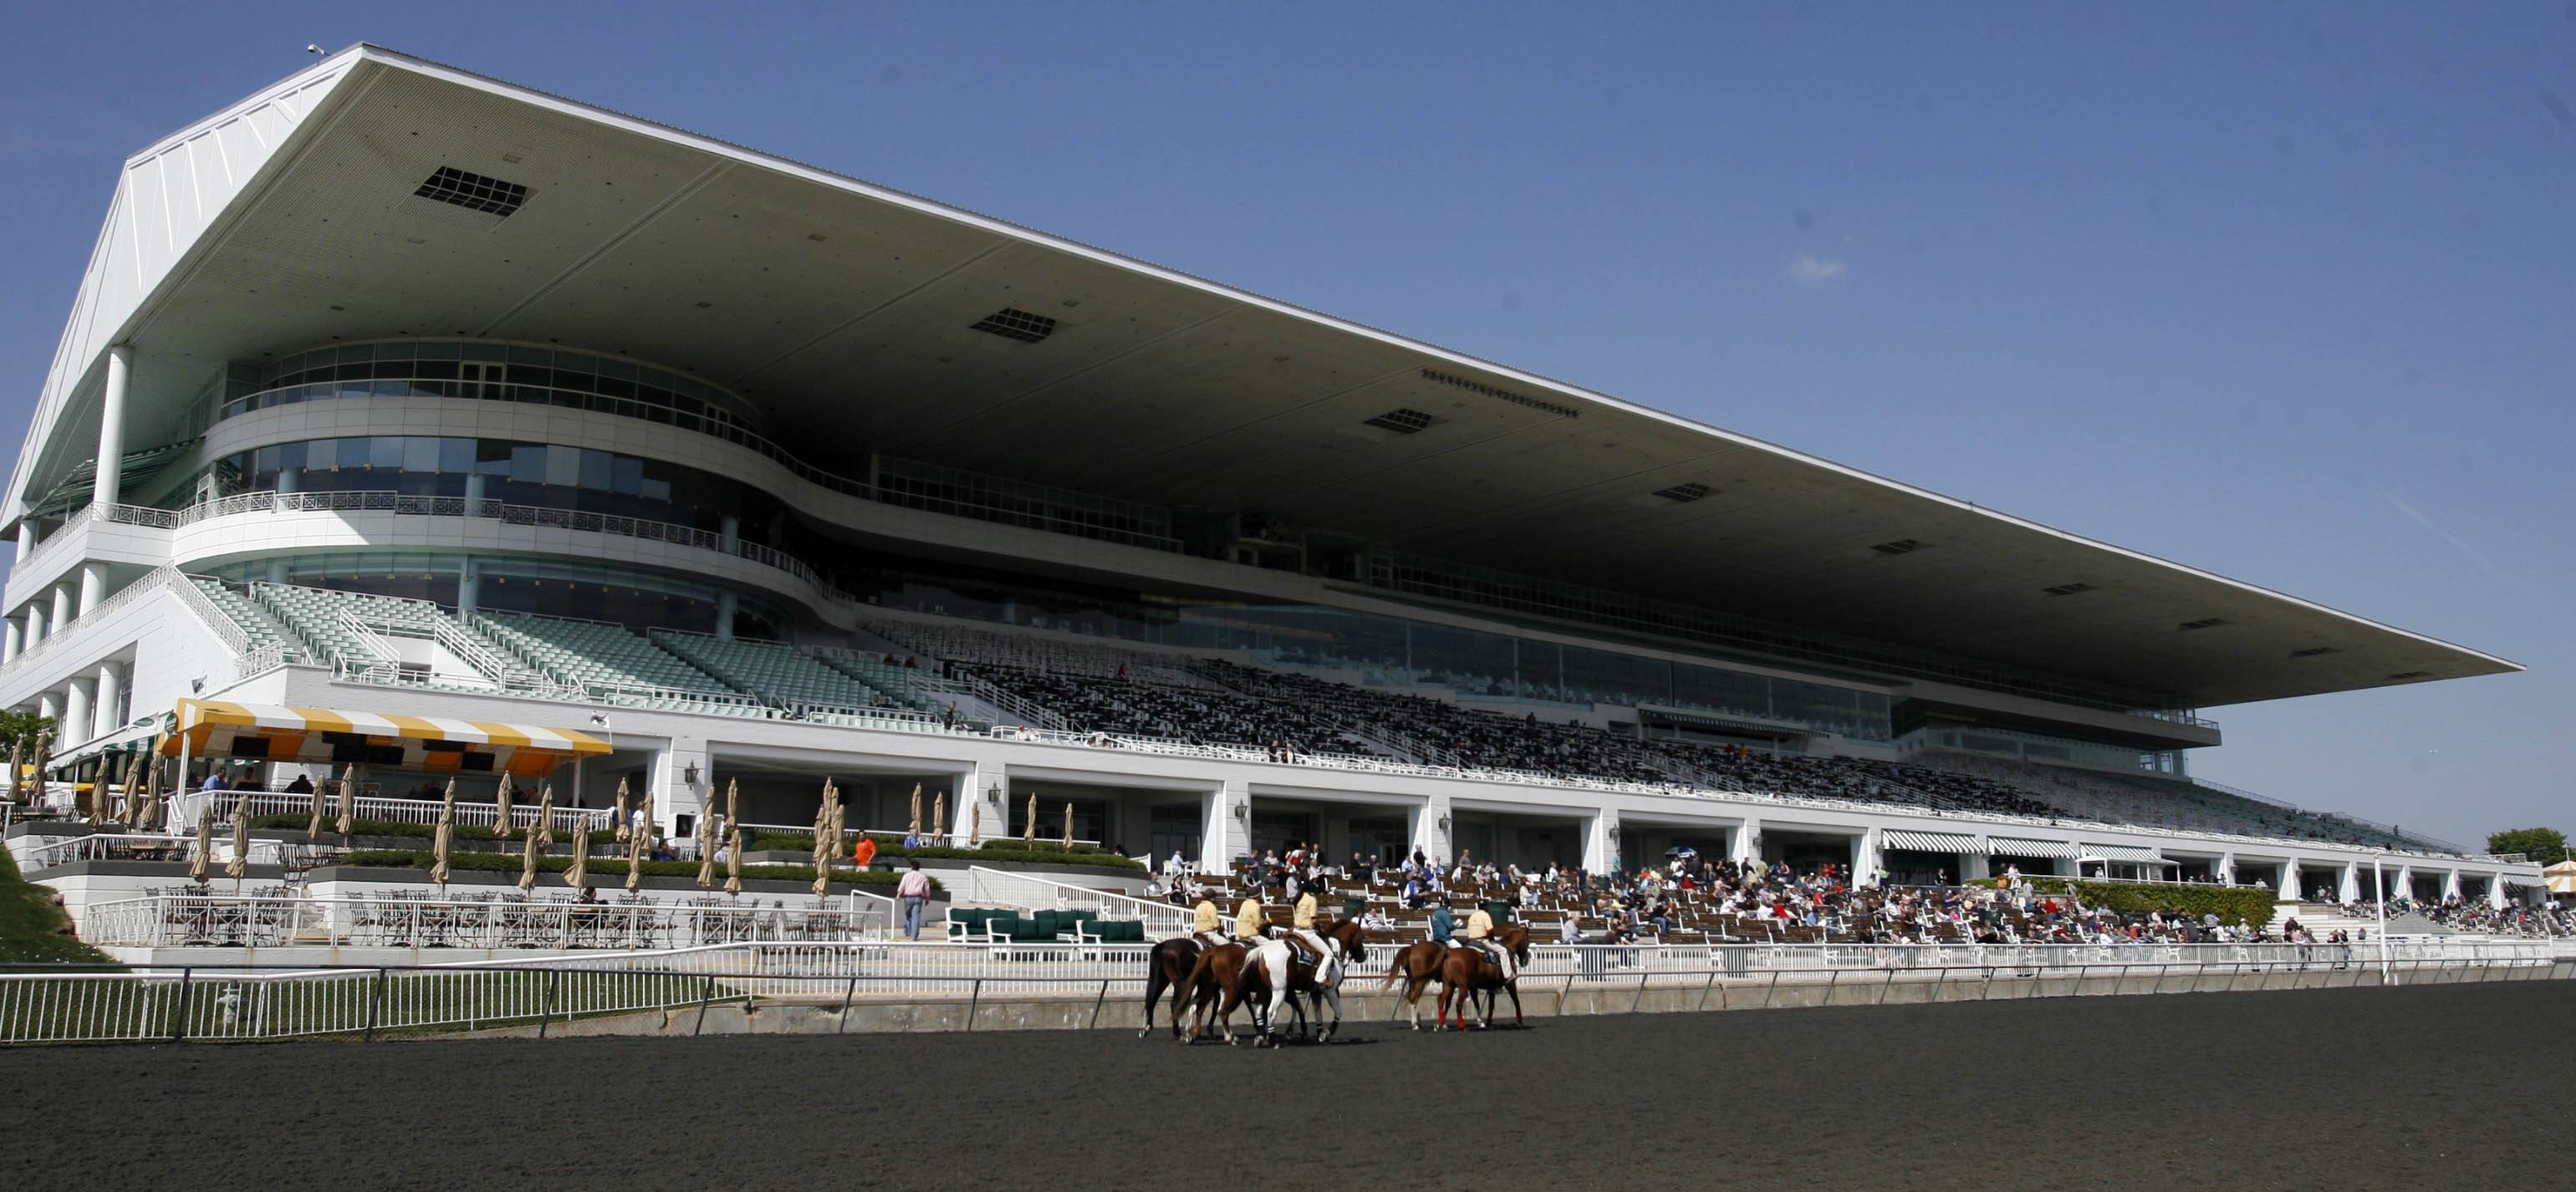 Arlington Park would get slot machines under the latest Illinois gambling proposal.